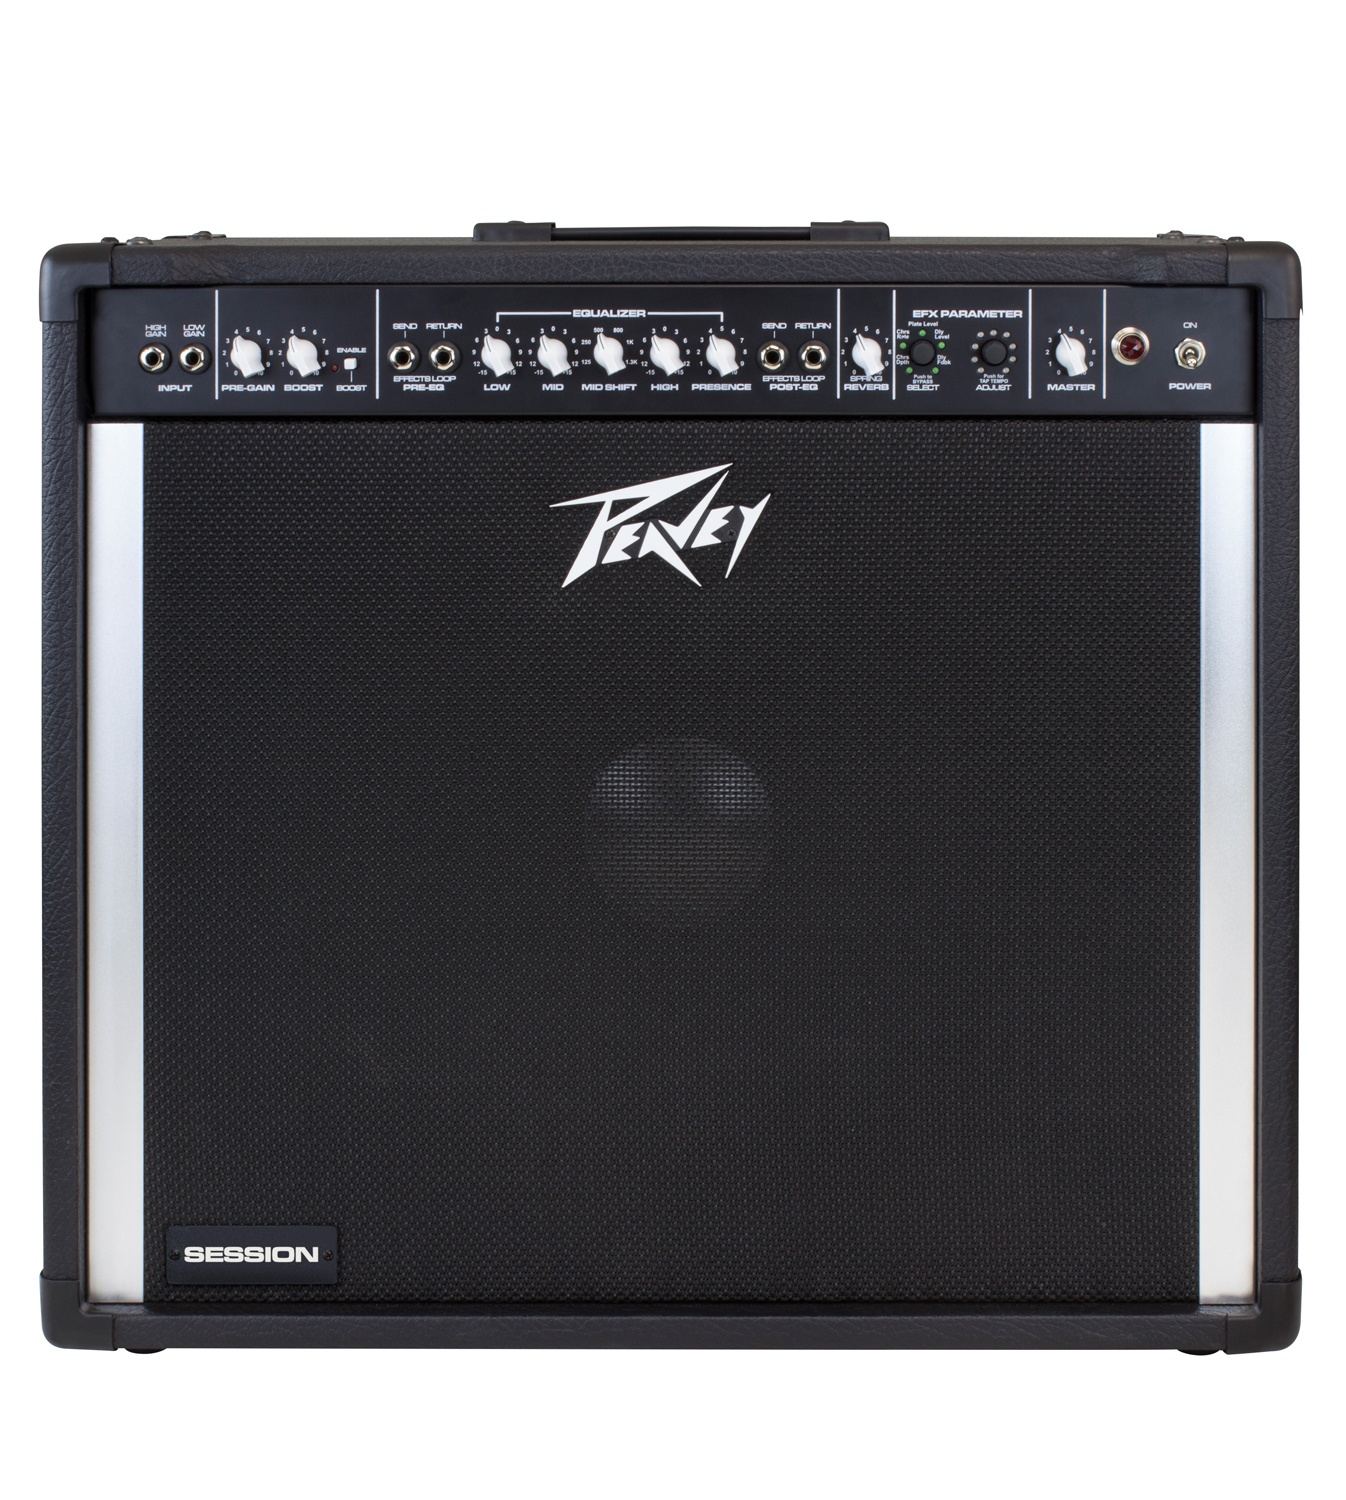 session 115 500 watt 1x15 pedal steel guitar amp peavey. Black Bedroom Furniture Sets. Home Design Ideas